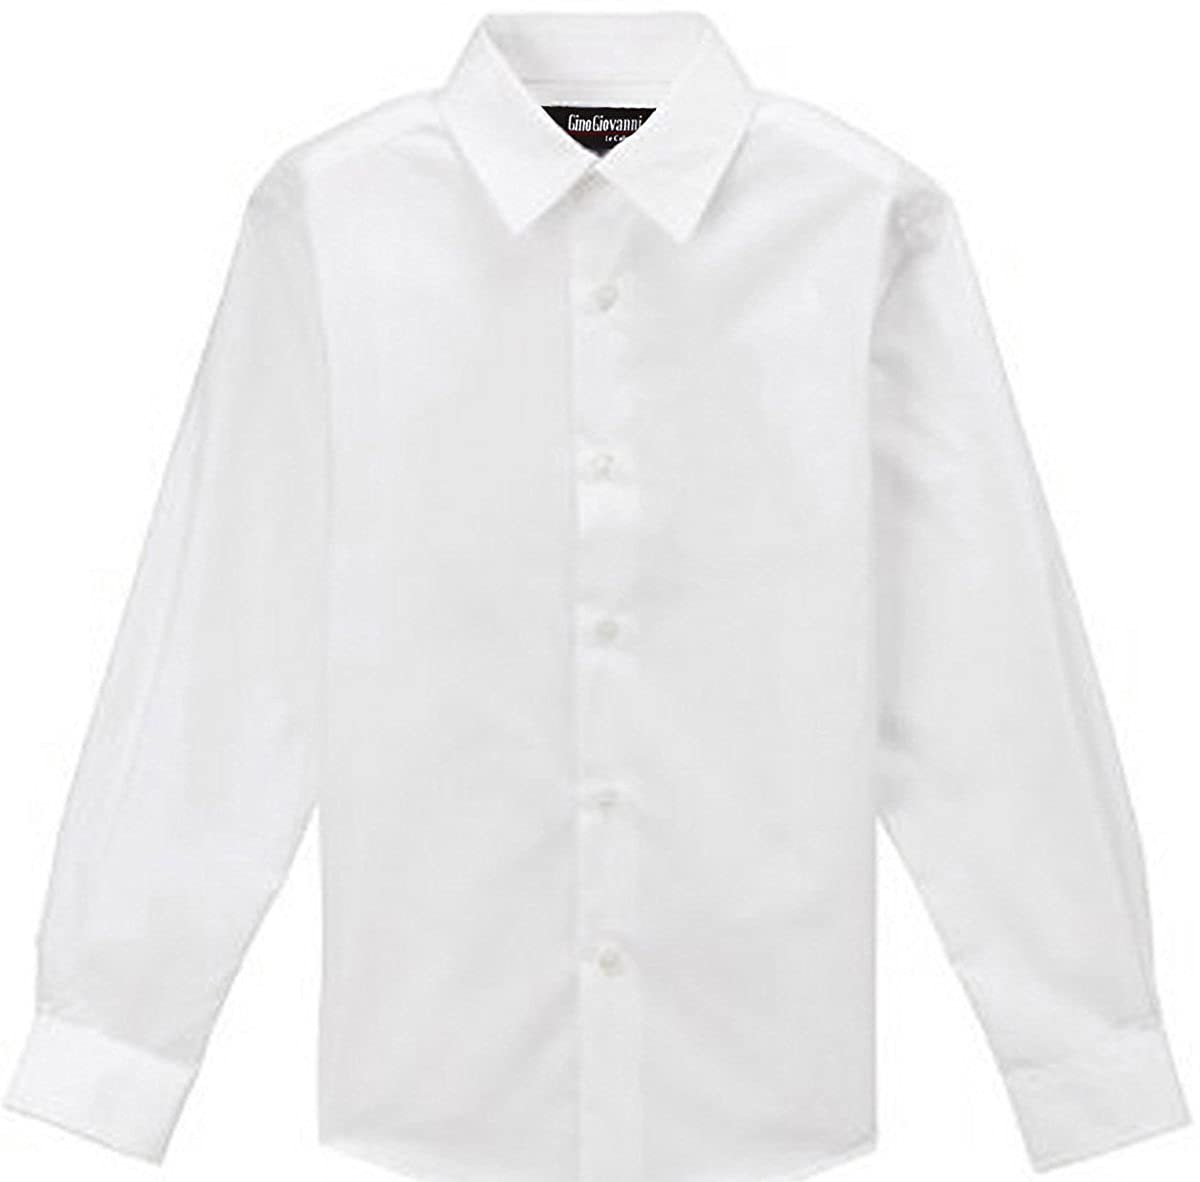 Amazon Gino Giovanni Formal White Dress Shirt For Boys From